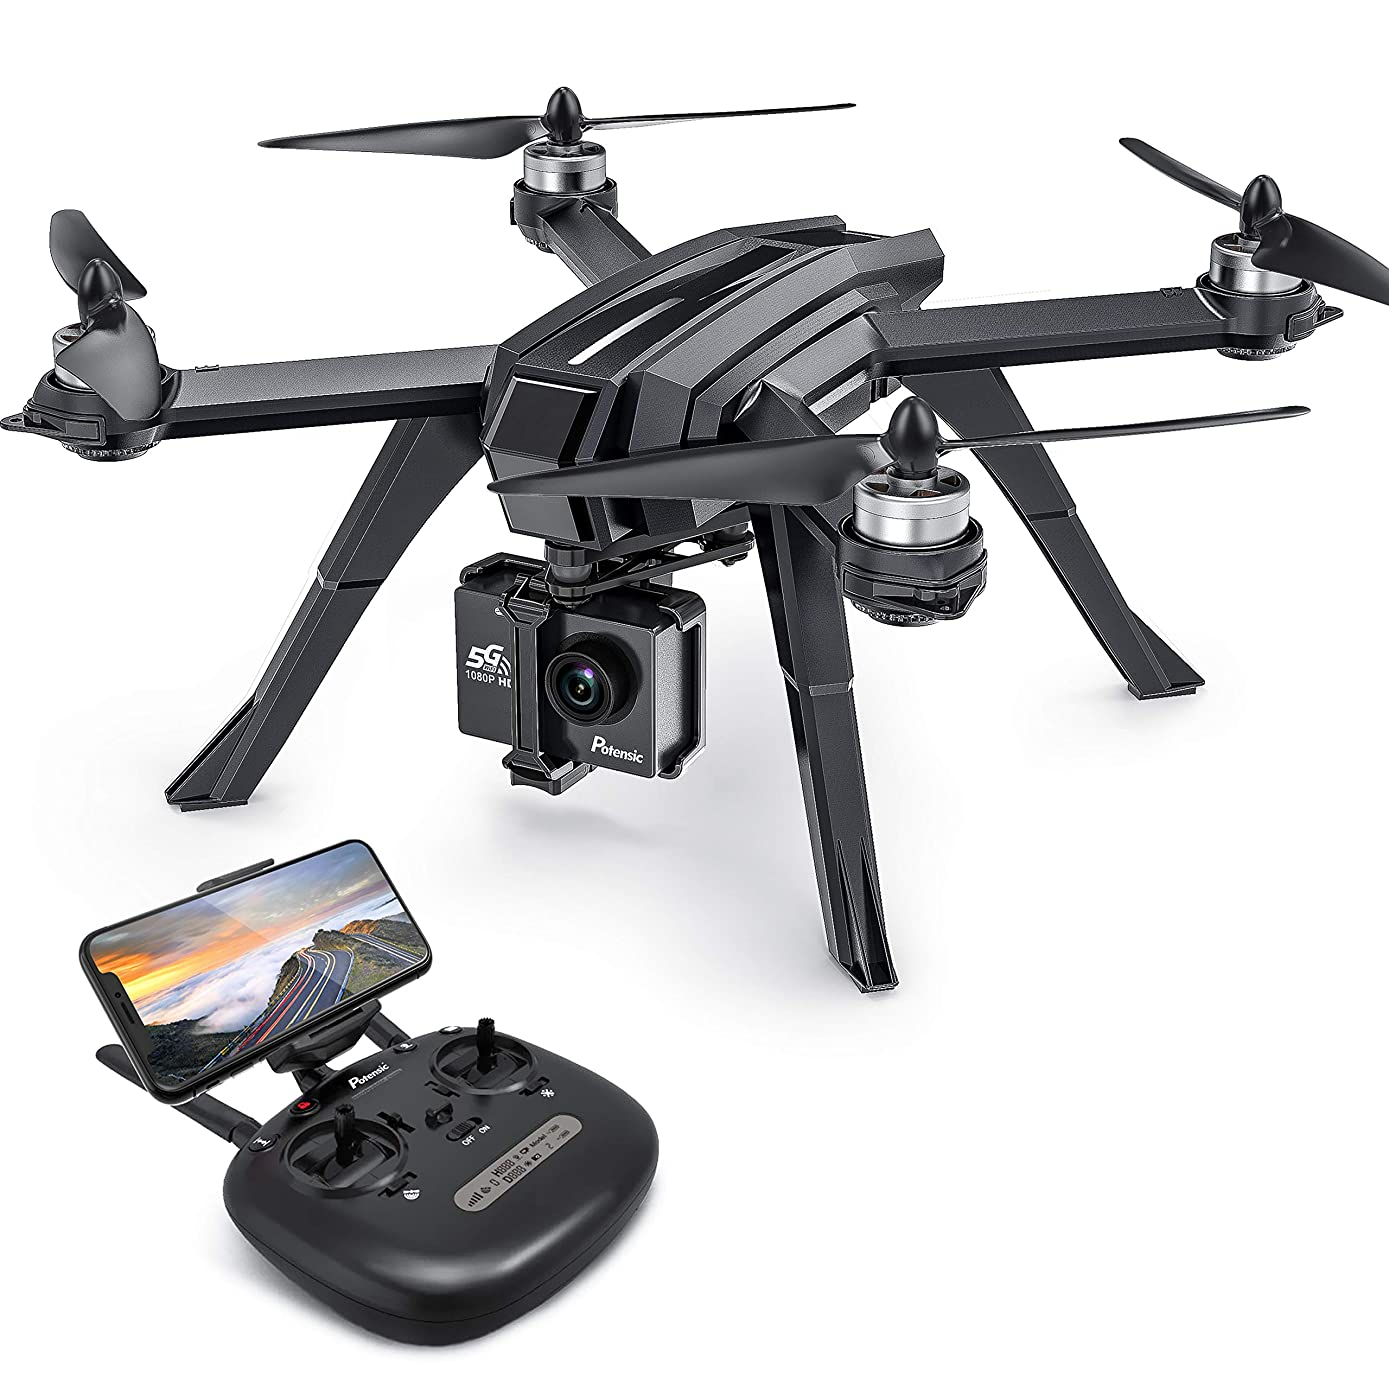 Drone GPS,Auto Return Home with 1080P HD Camera 5G FPV Live Video, Potensic D85 RC Quadcopter for Adults,GPS Follow Me,Brushless Altitude Hold,Sport Camera